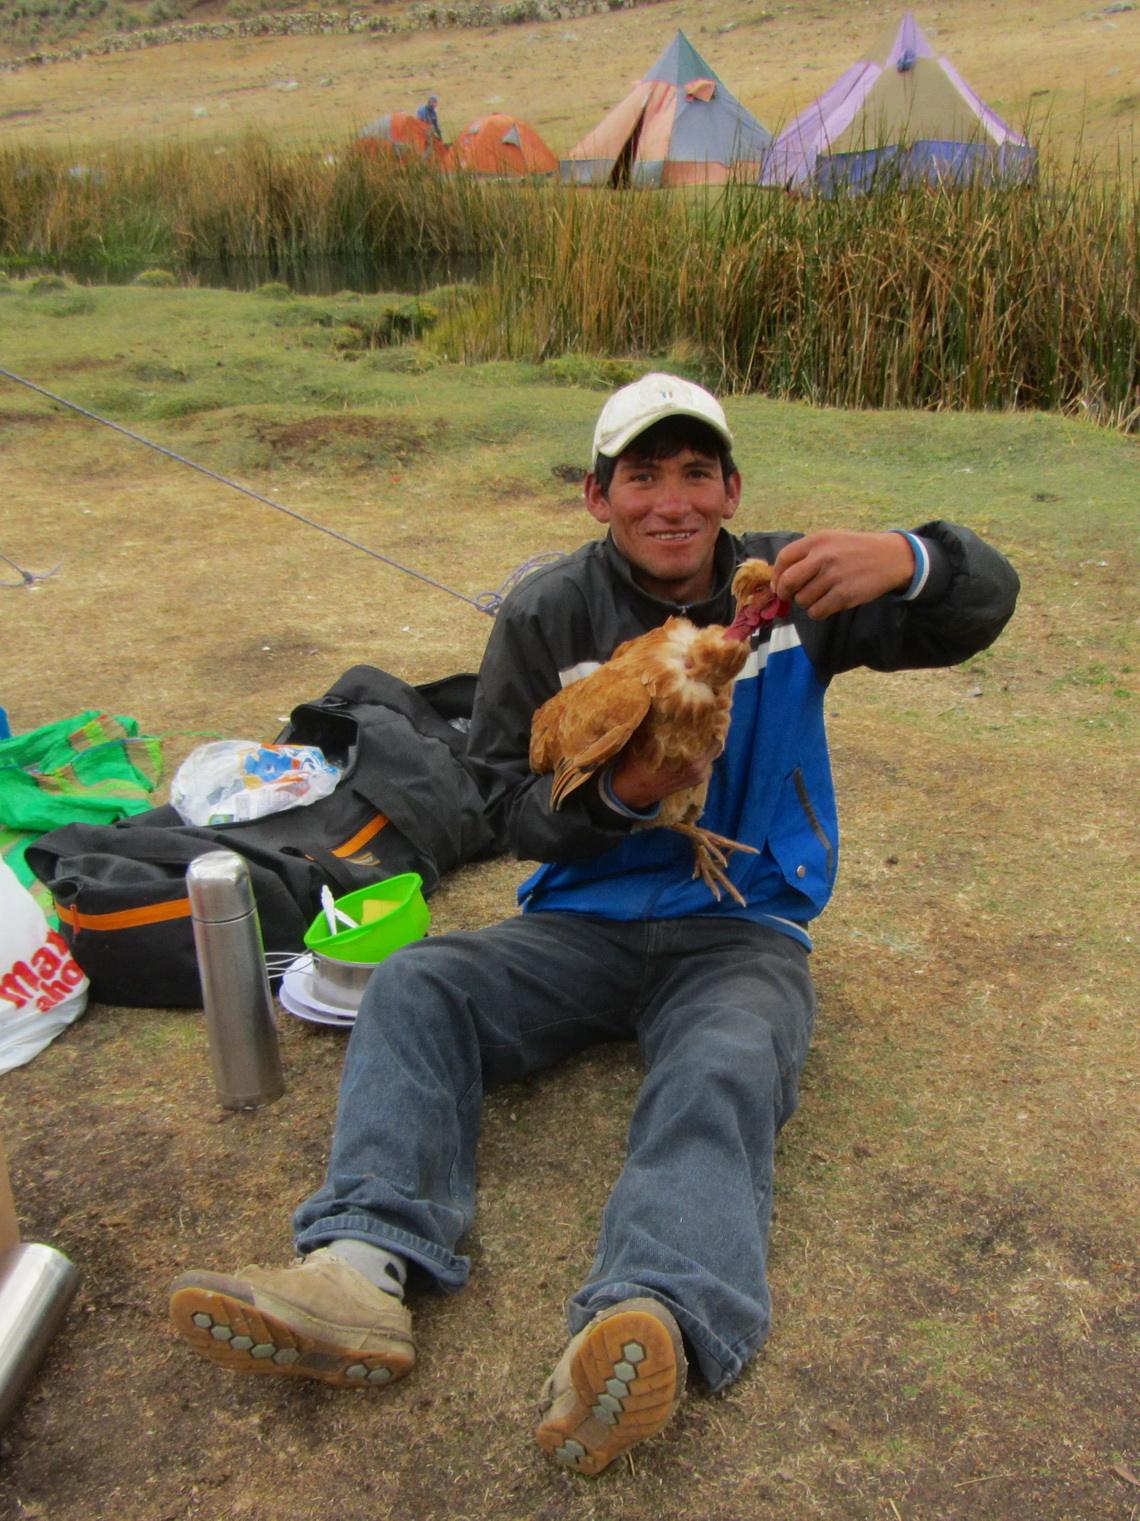 Susman with a chicken in the Jahuacocha camp